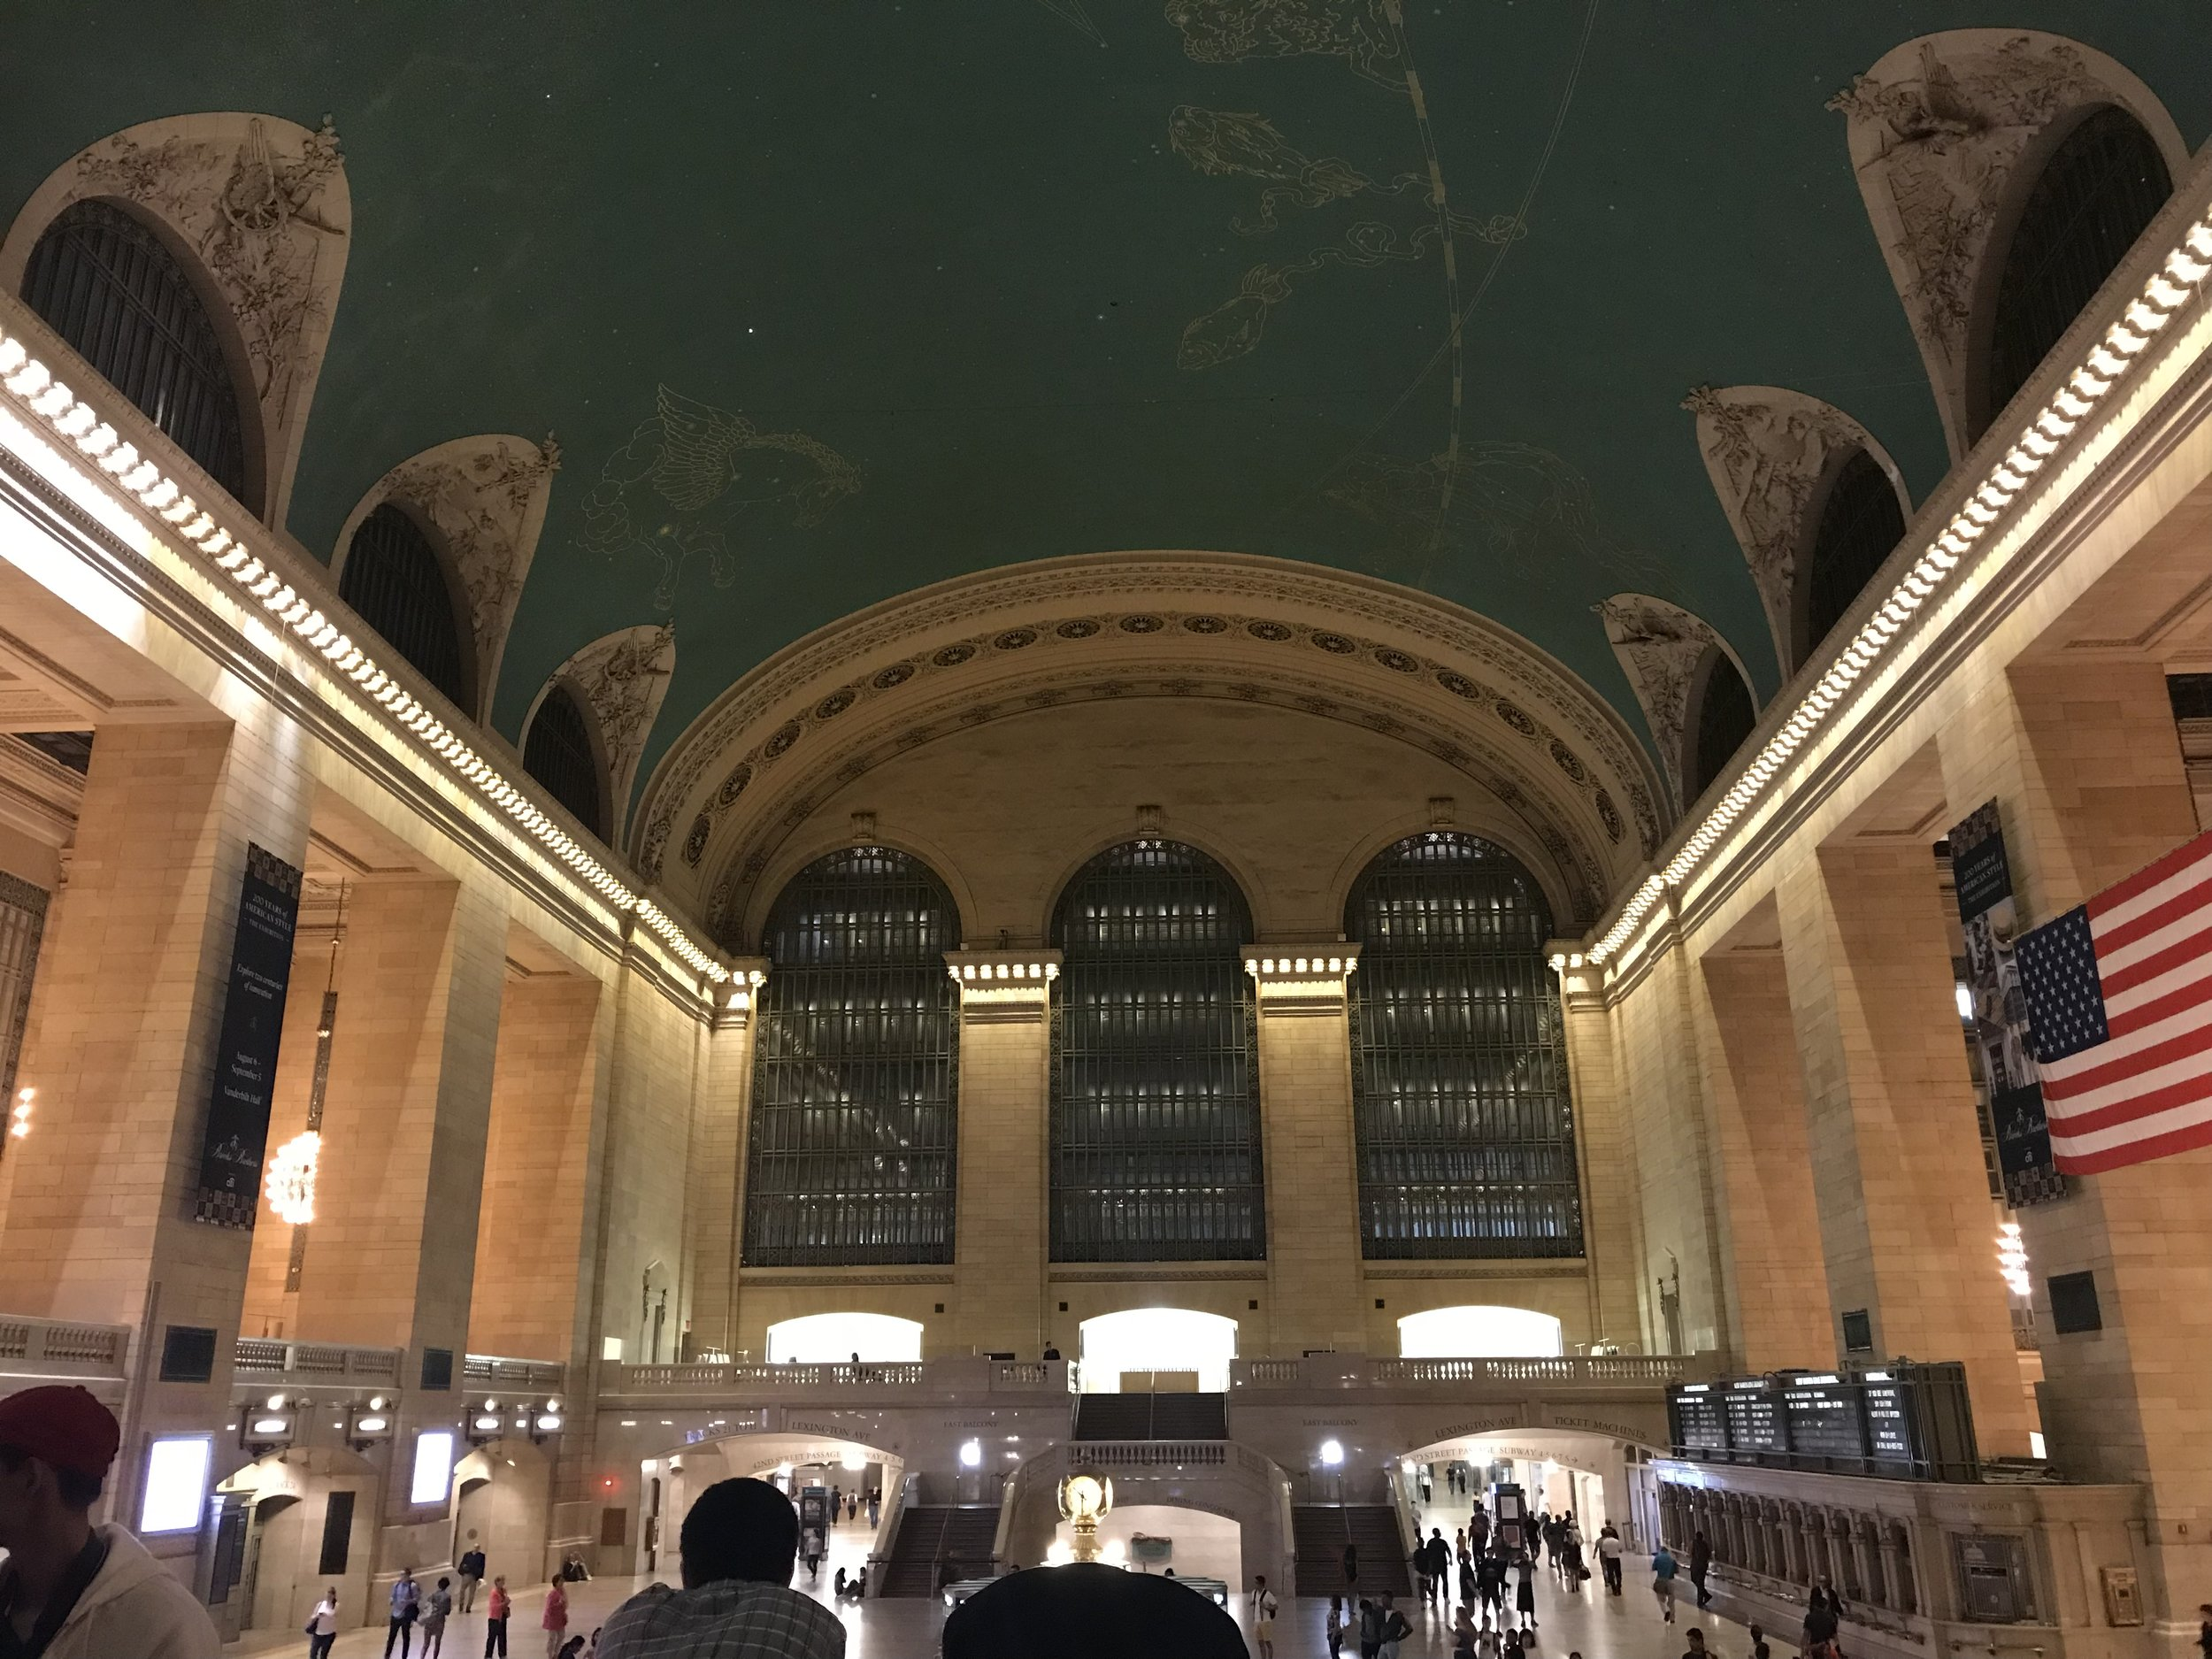 This is how Grand Central looked before I went into The Campbell — not too crowded, but still plenty of tourists and commuters.